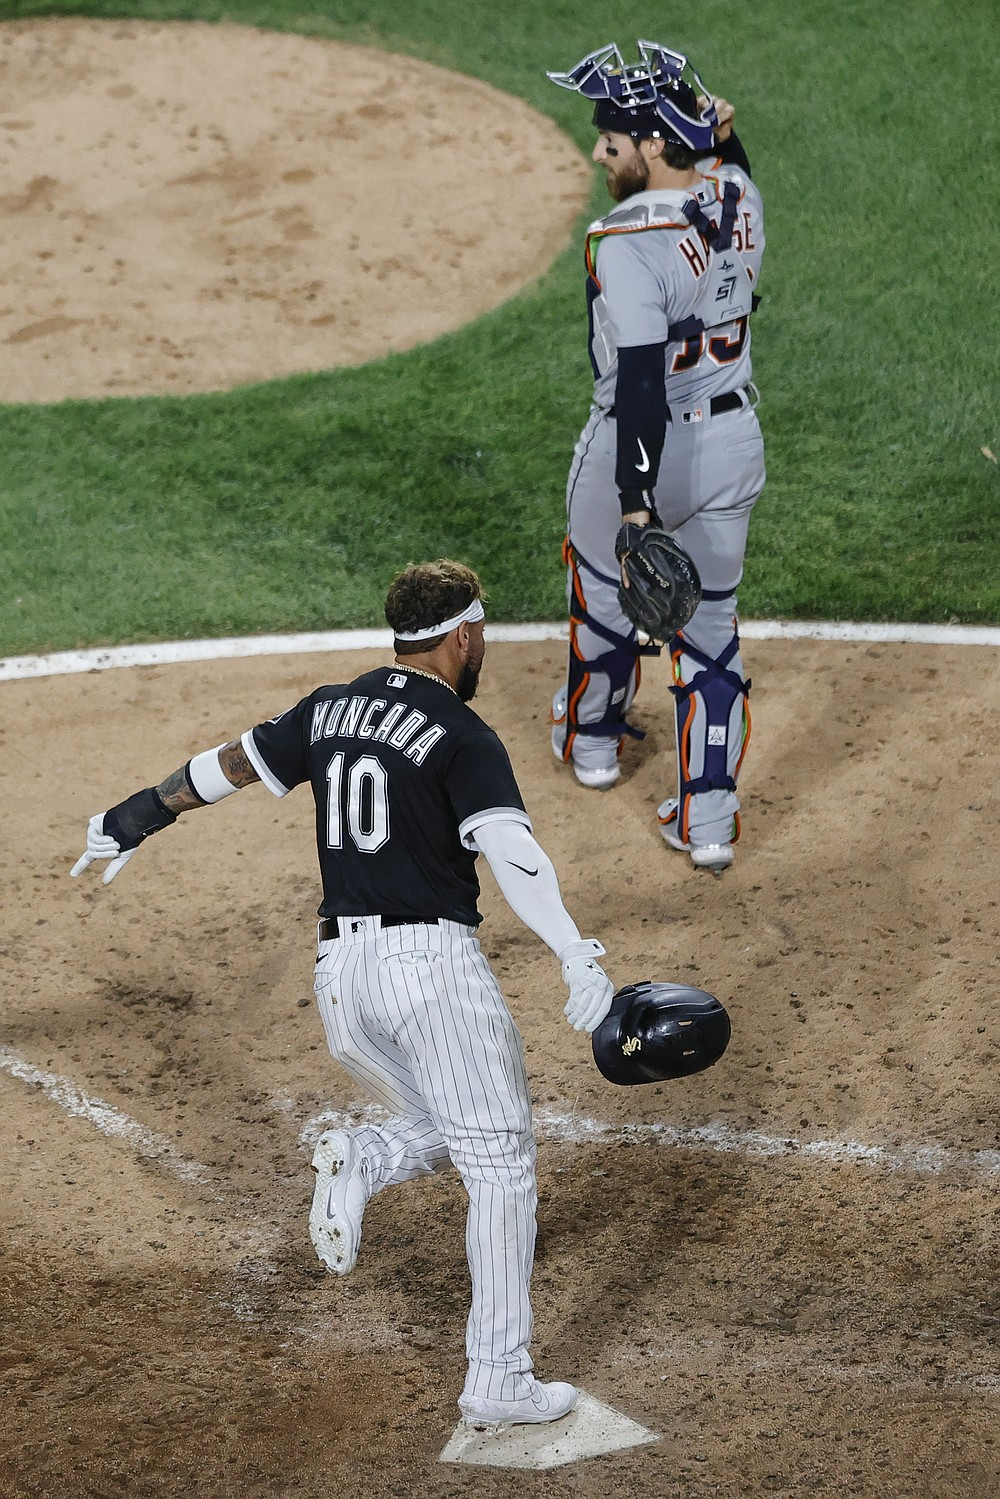 Chicago White Sox's Yoan Moncada (10) scores on a single hit by Yermin Mercedes off Detroit Tigers relief pitcher Jose Cisnero during the ninth inning of a baseball game, Friday, June 4, 2021, in Chicago. (AP Photo/Kamil Krzaczynski)